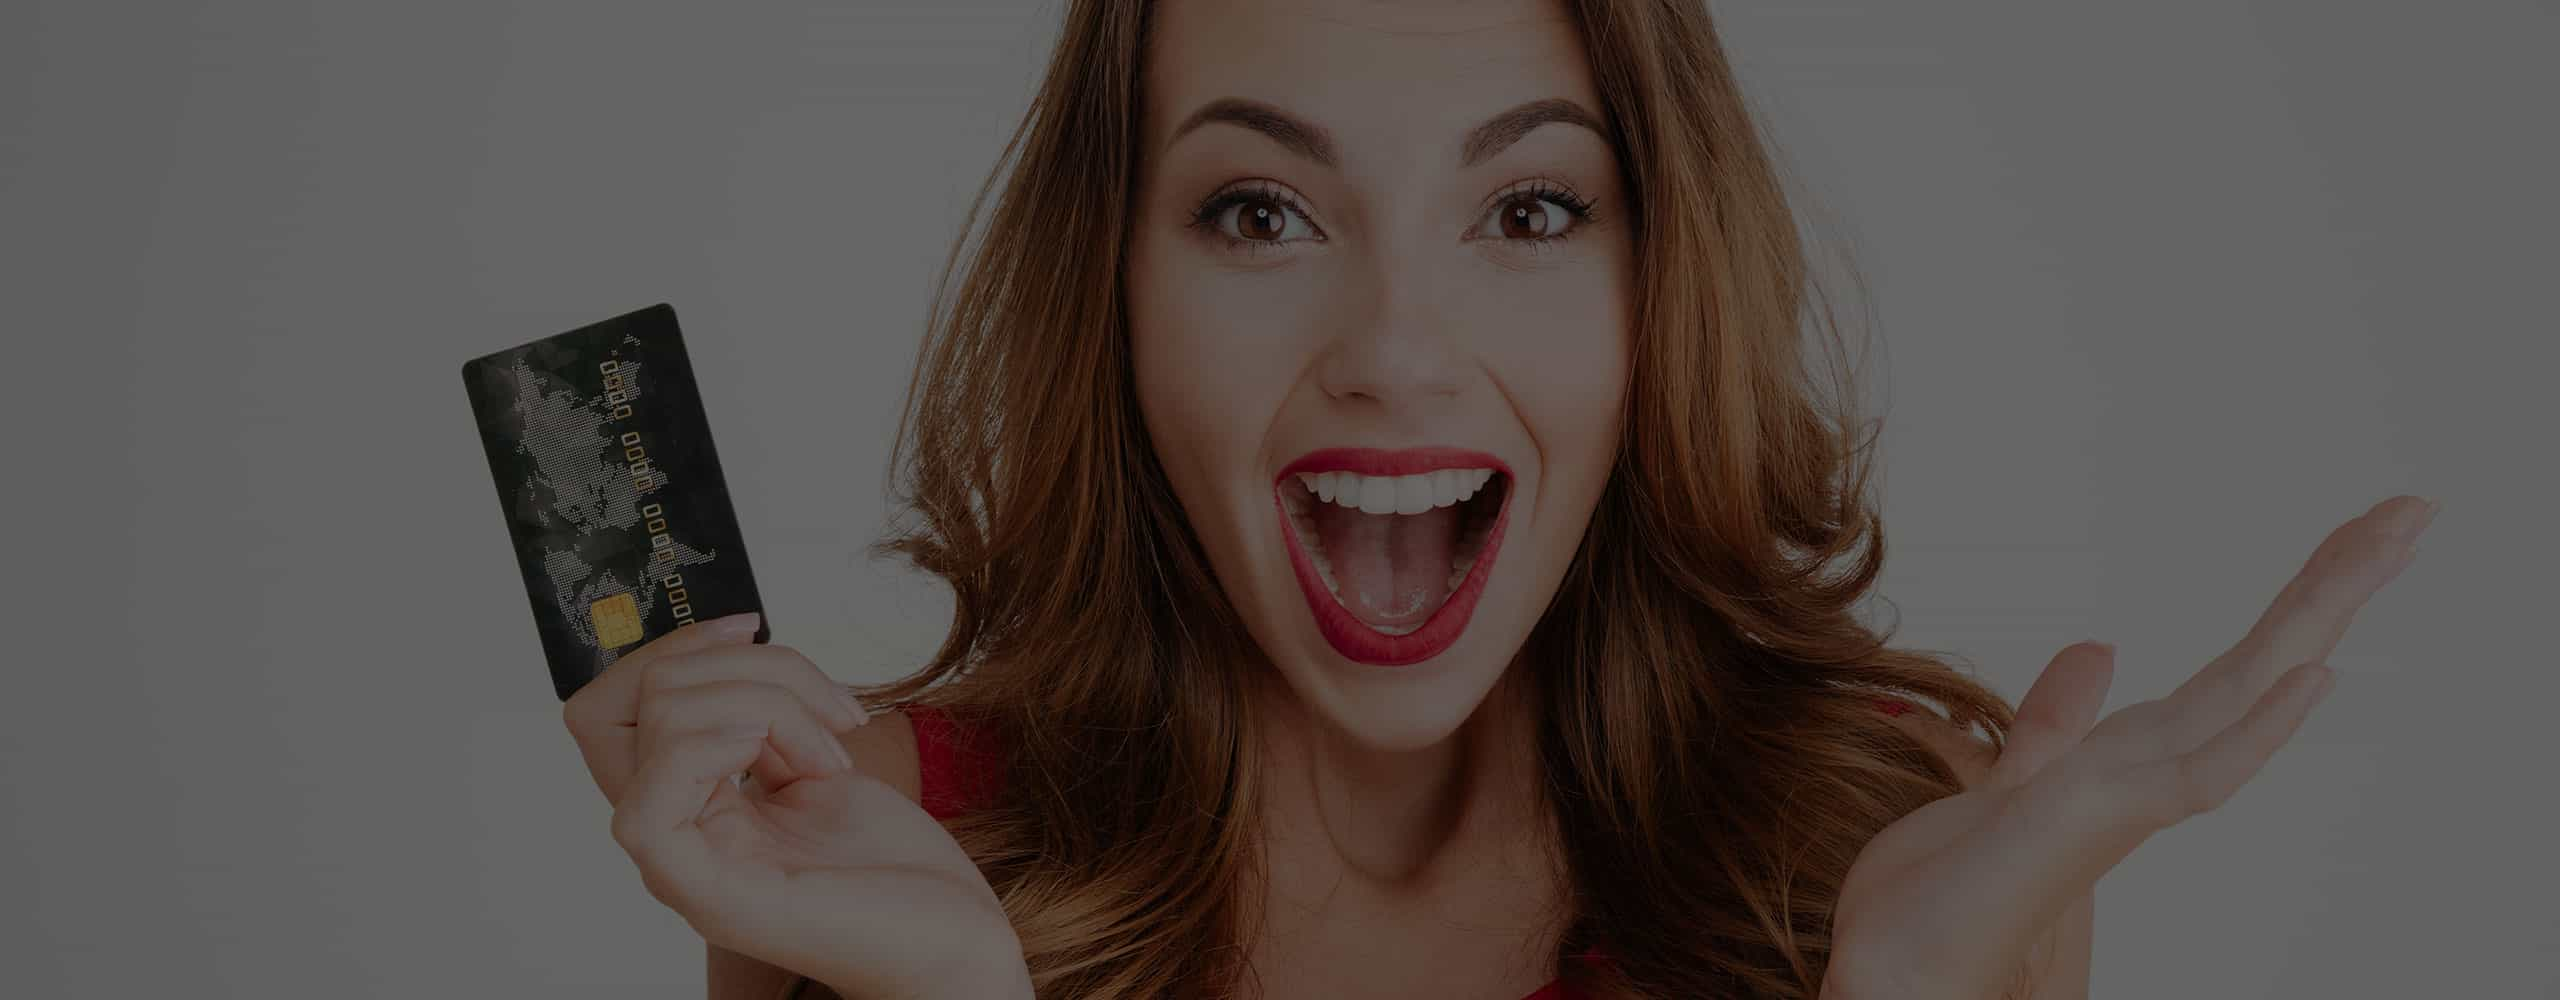 Excited Woman holding gift card